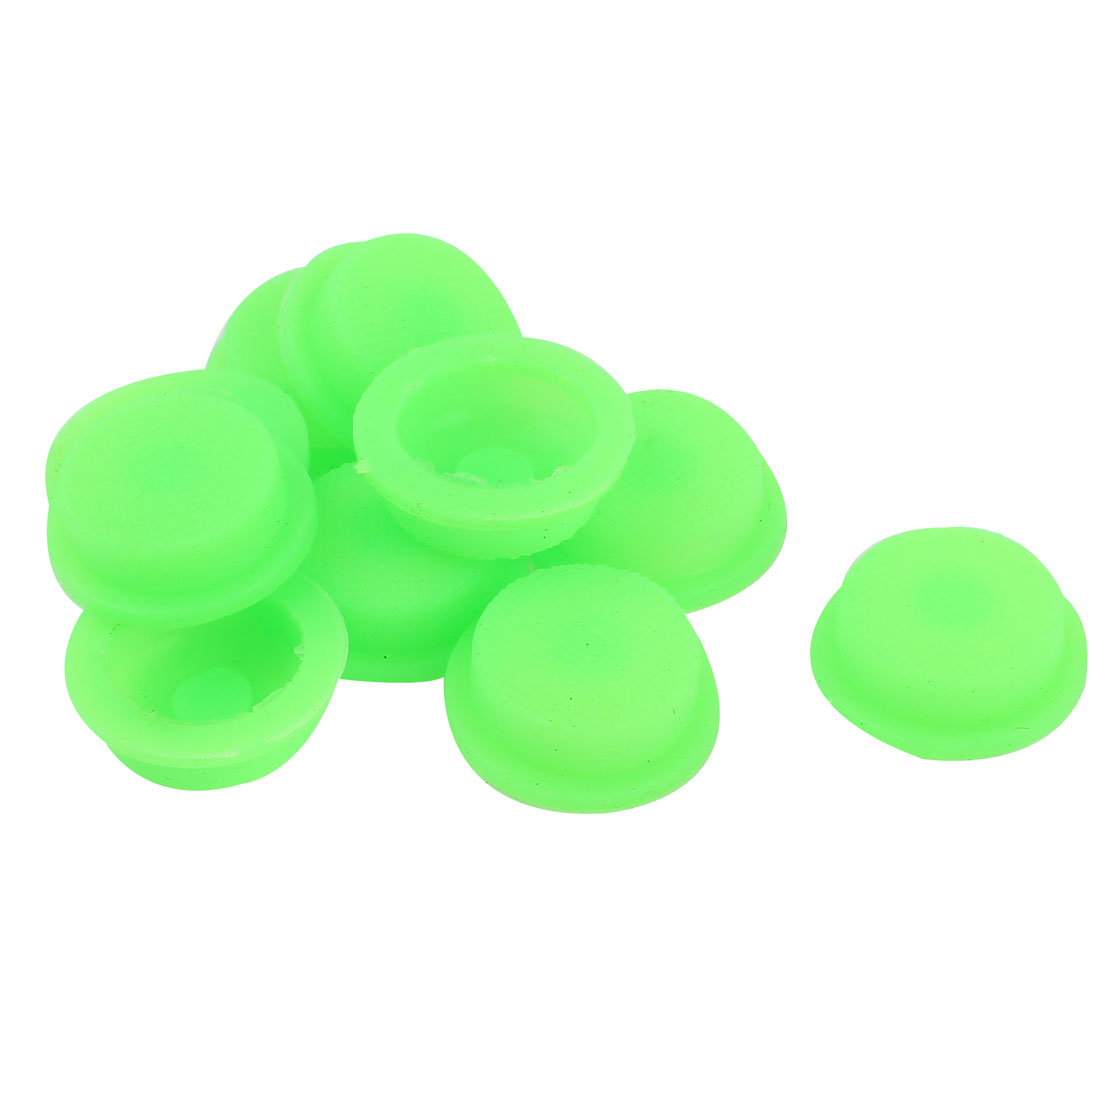 10pcs 16mm Dia Protective Waterproof Silicone Switch Cover Guard Green